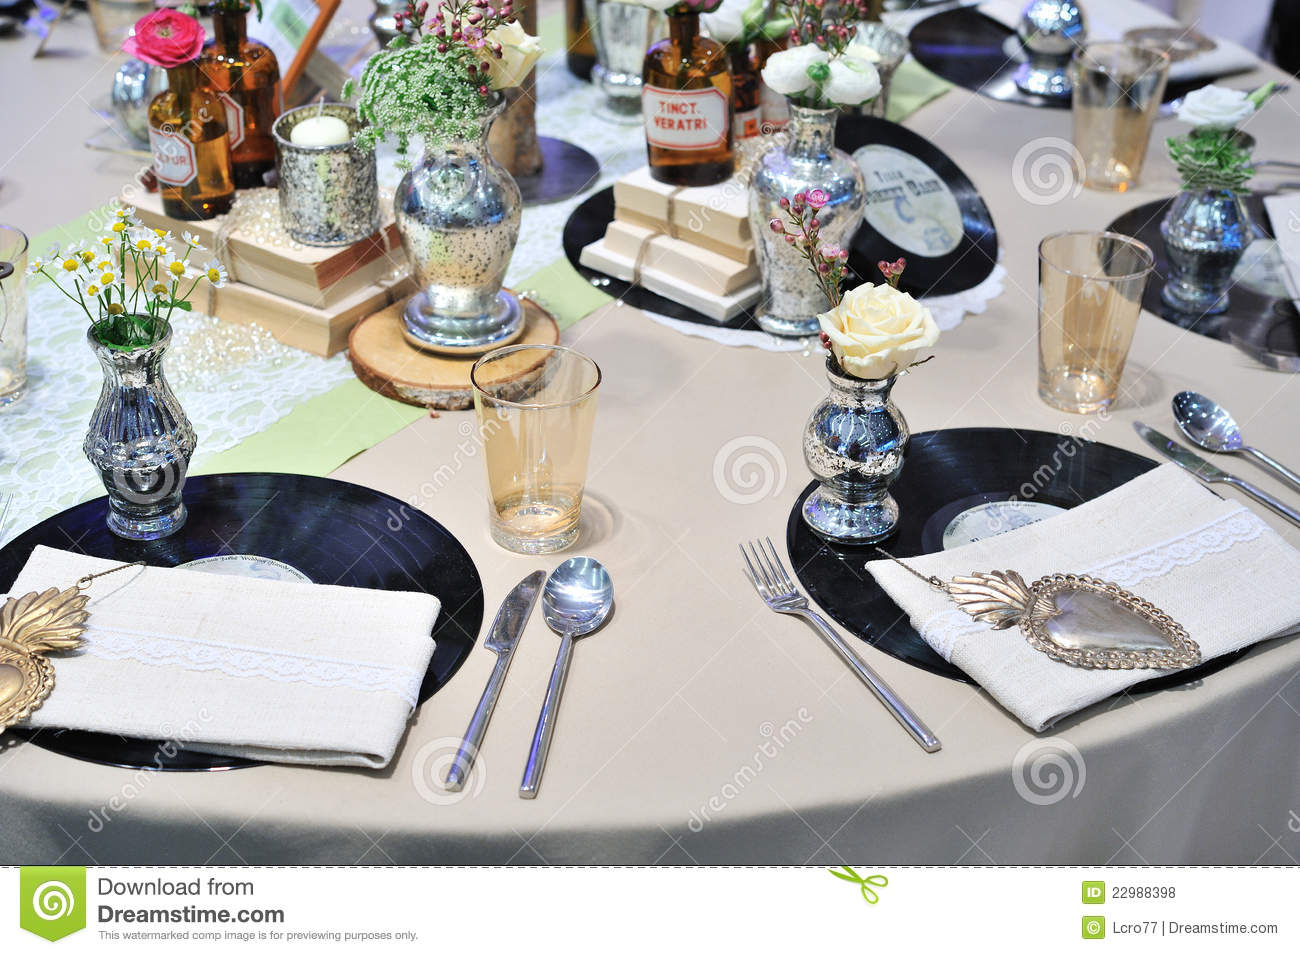 Vintage table decoration for wedding event royalty free - Deco table retro ...